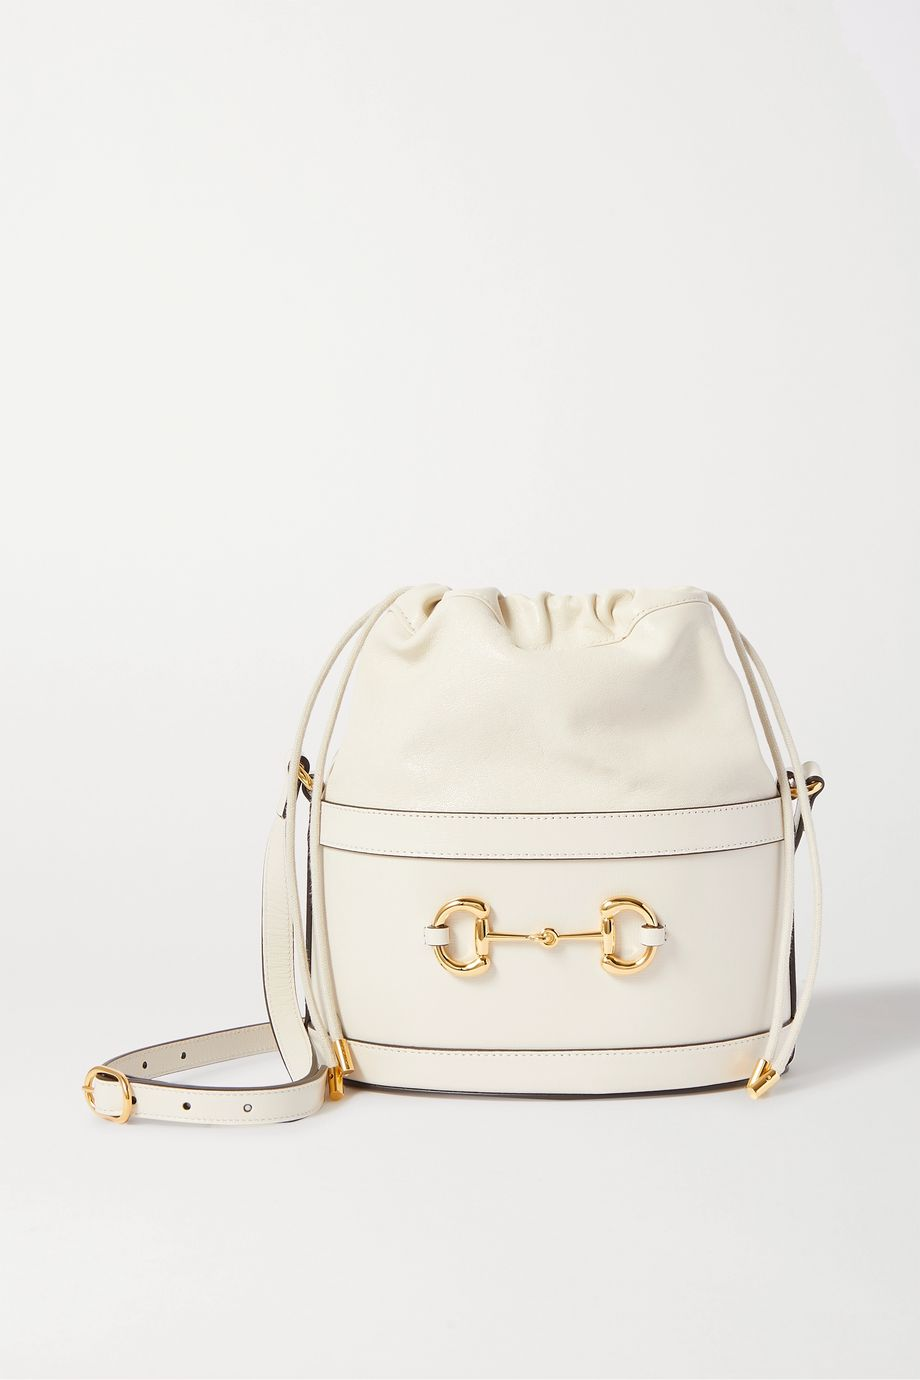 Gucci Morsetto 1955 leather shoulder bag